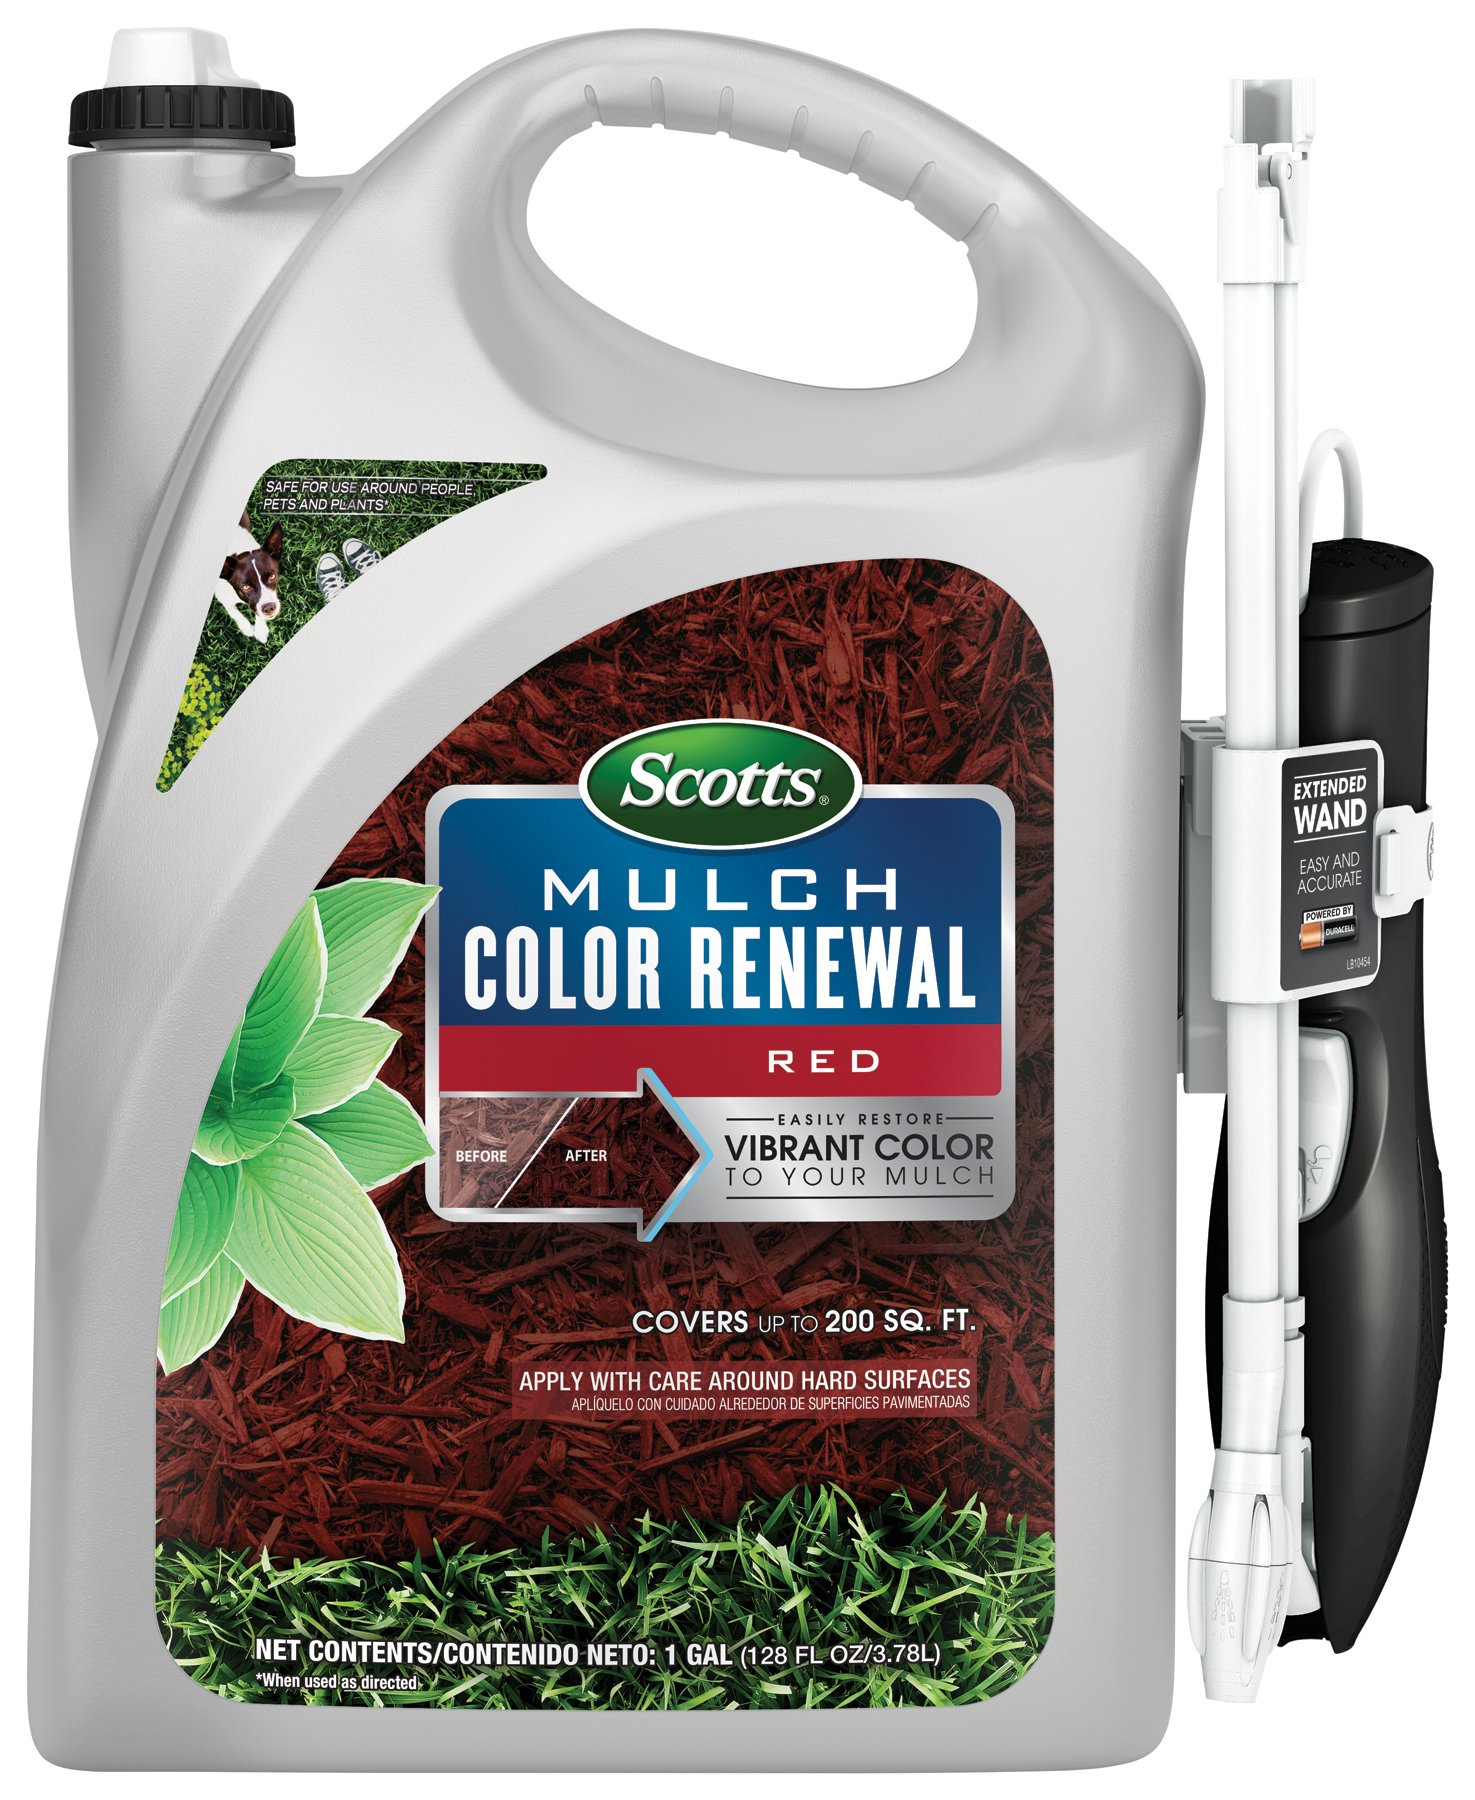 Scotts 1378104 1378104 Red Mulch Color Renewal